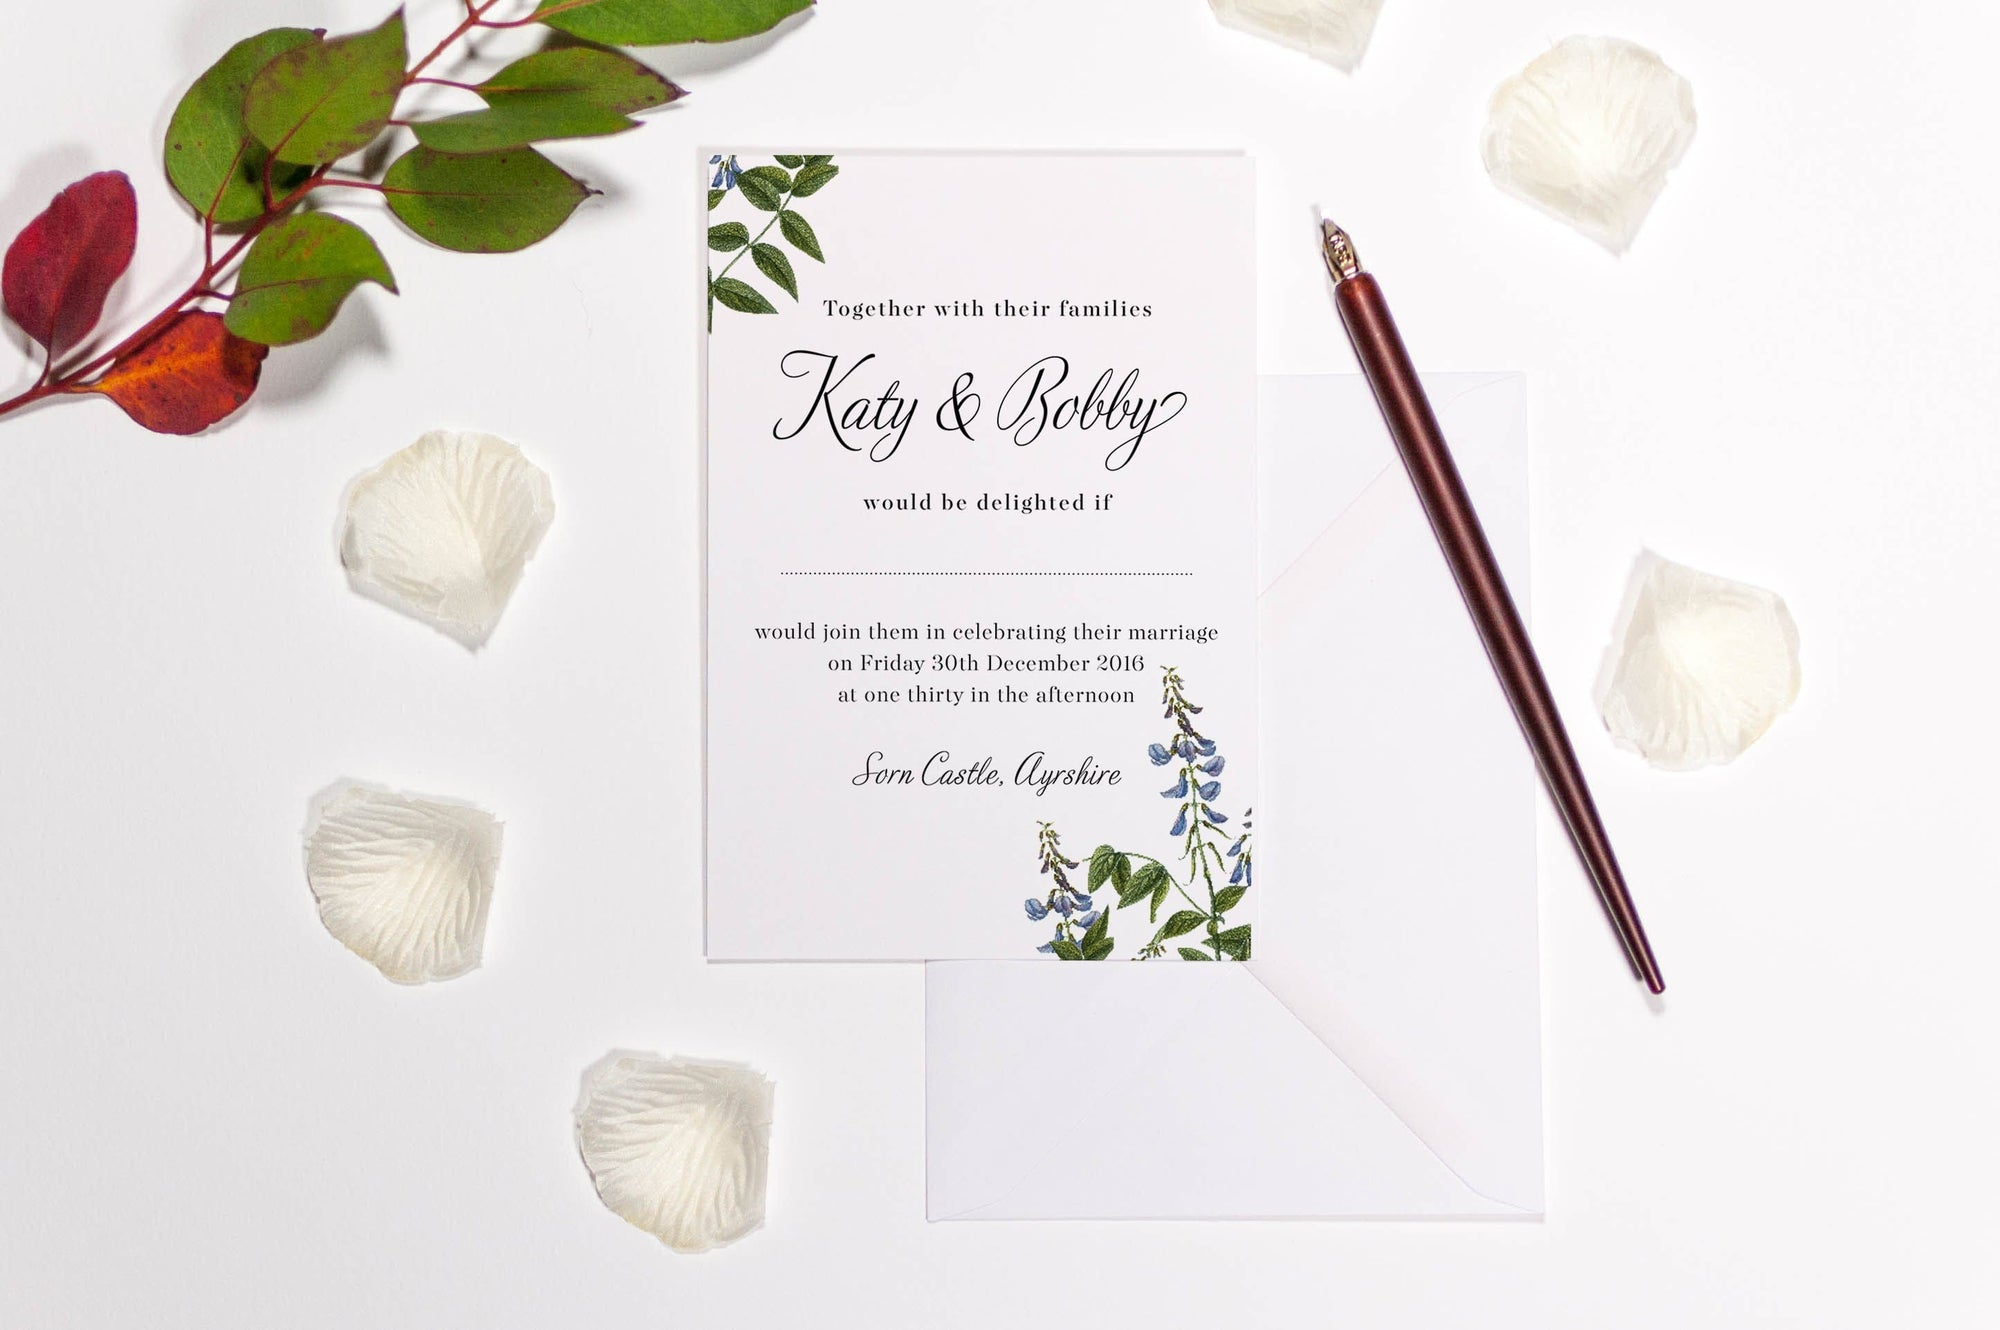 luxuryweddinginvitationsbycombossa HD Printed Wedding Invitations Sample Invitation £1.60 (Colour as shown) / Black Ink Botanic Bluebells Wedding Invitation, HD Digital Print Sample